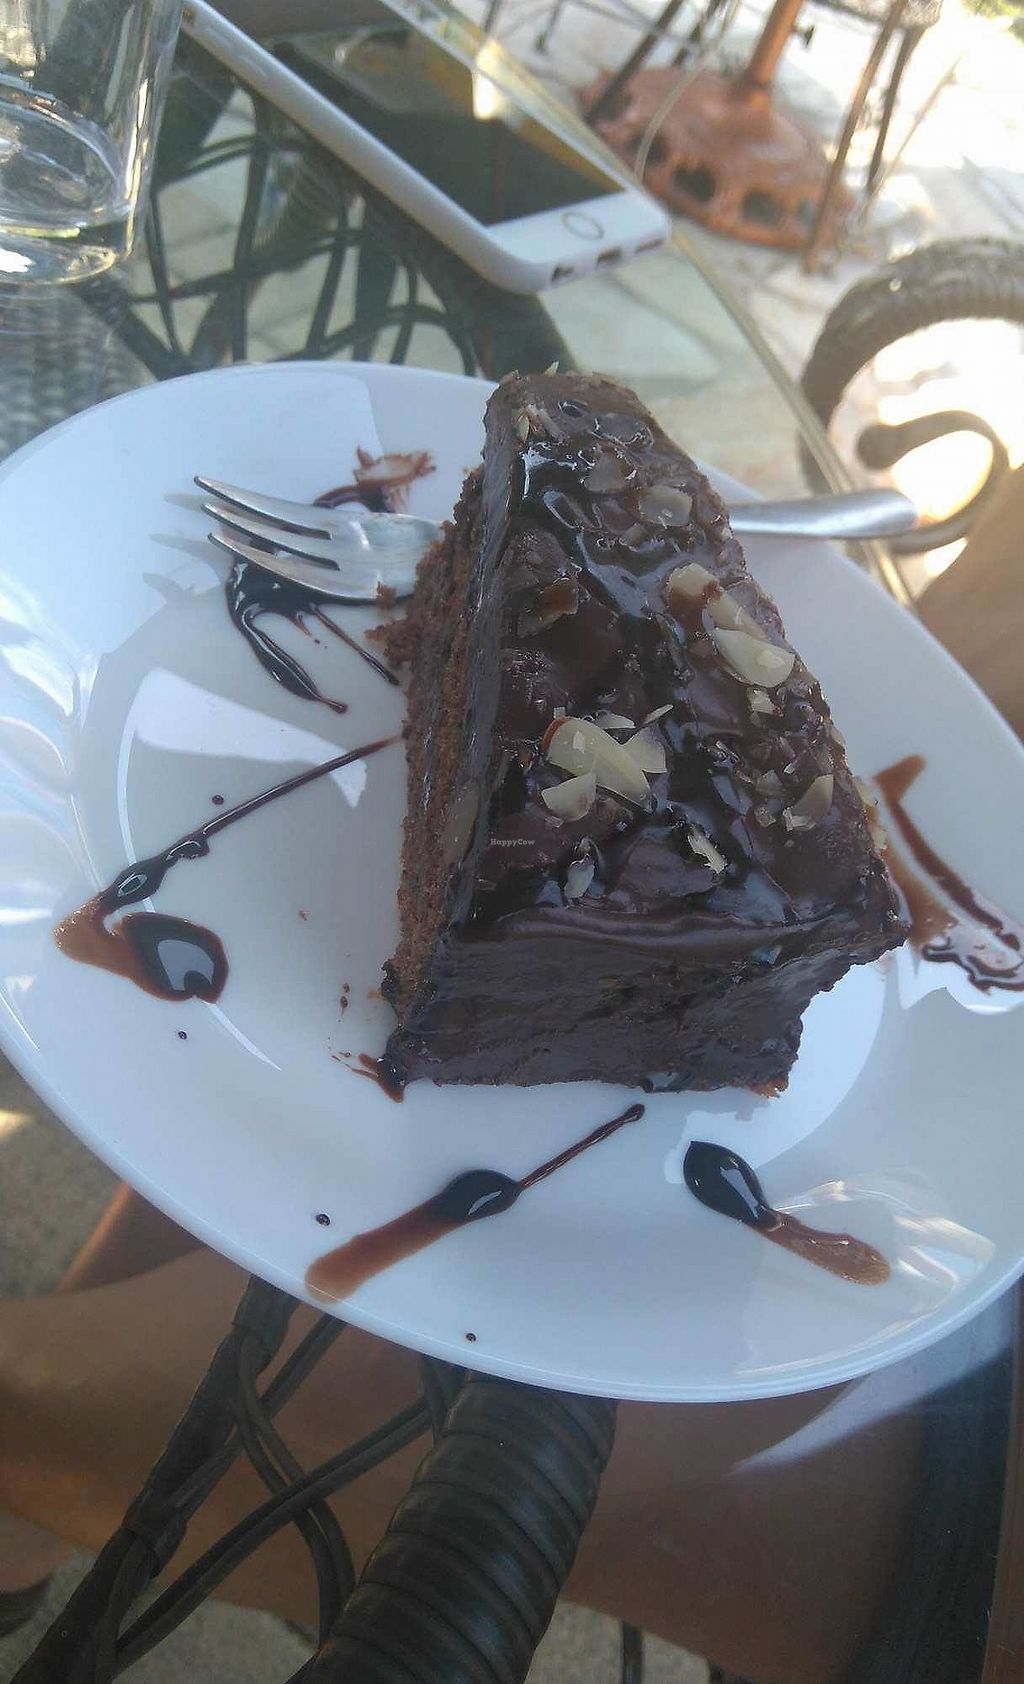 """Photo of Loving Hut - Lake Klopein  by <a href=""""/members/profile/BarbaraLenart"""">BarbaraLenart</a> <br/>Awesome chocolate cake! <br/> August 12, 2017  - <a href='/contact/abuse/image/21791/291855'>Report</a>"""